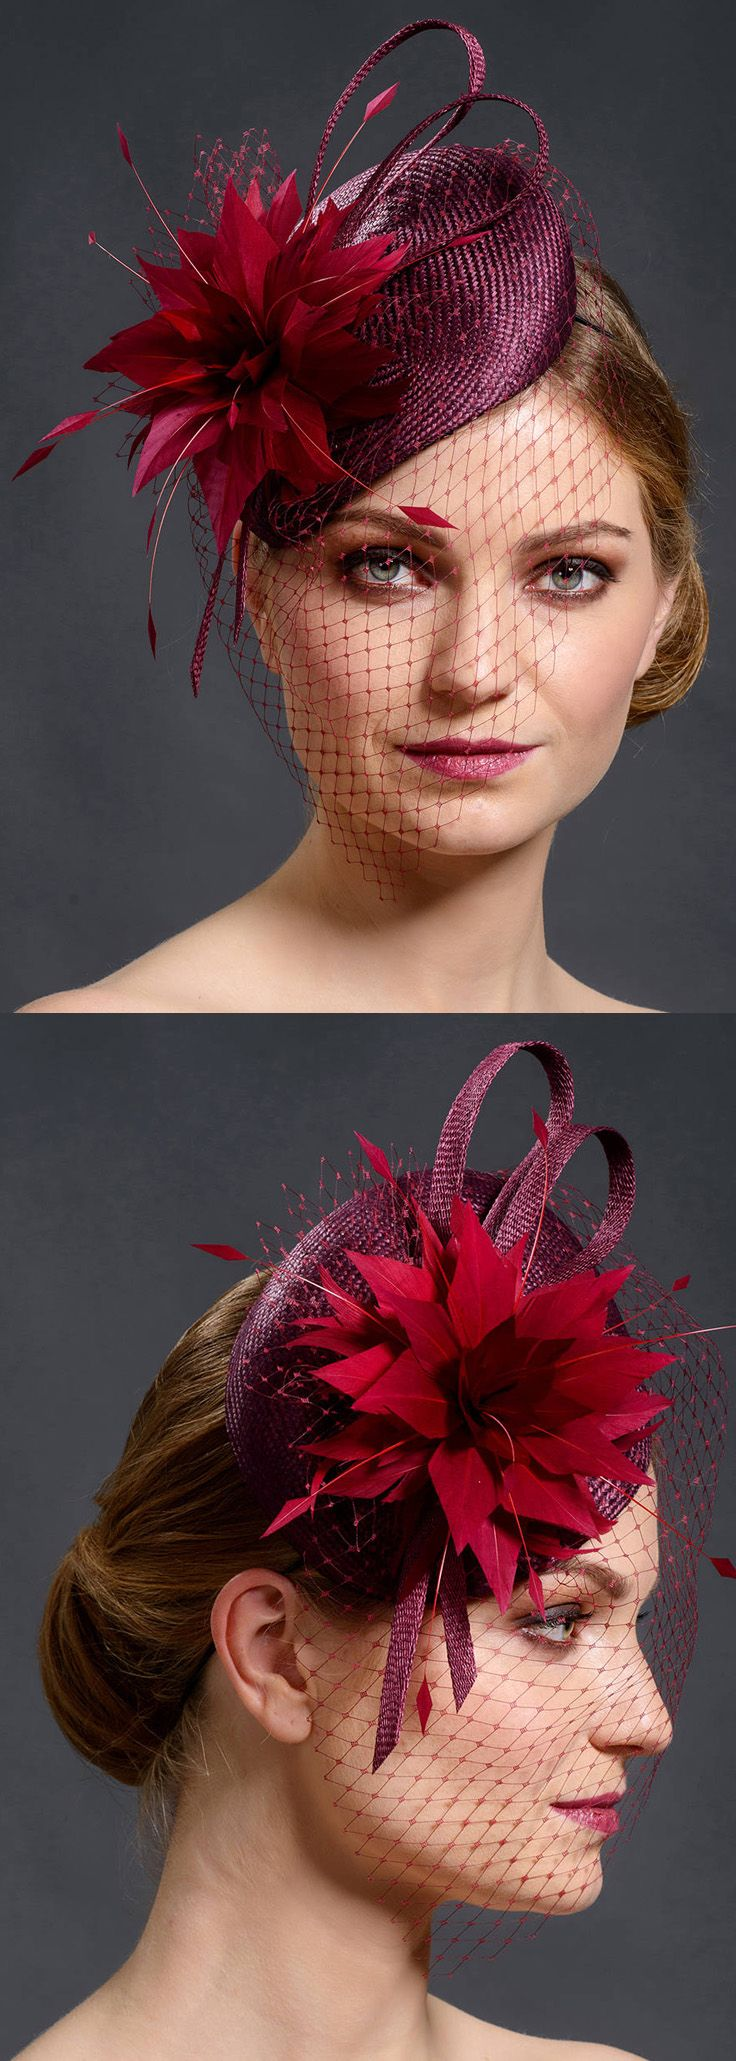 Etsy Designer fascinator headpiece. Burgundy Red fascinator for Mother of the Bride weddings, races, cocktail parties, Kentucky Derby, Royal Ascot, Cheltenham Festival or other special occasions Hat with Flowers. Feather fascinator for the Races outfit ideas. #royalascot #kentuckyderby #derbyhats #racingfashion #hatsforcheltenham #fashionsonthefield #hatsfortheraces #millinery #handmadeisbest #etsy #etsyfinds #affiliatelink #fashion #fashionista #ootd #floralfashion #fascinator…